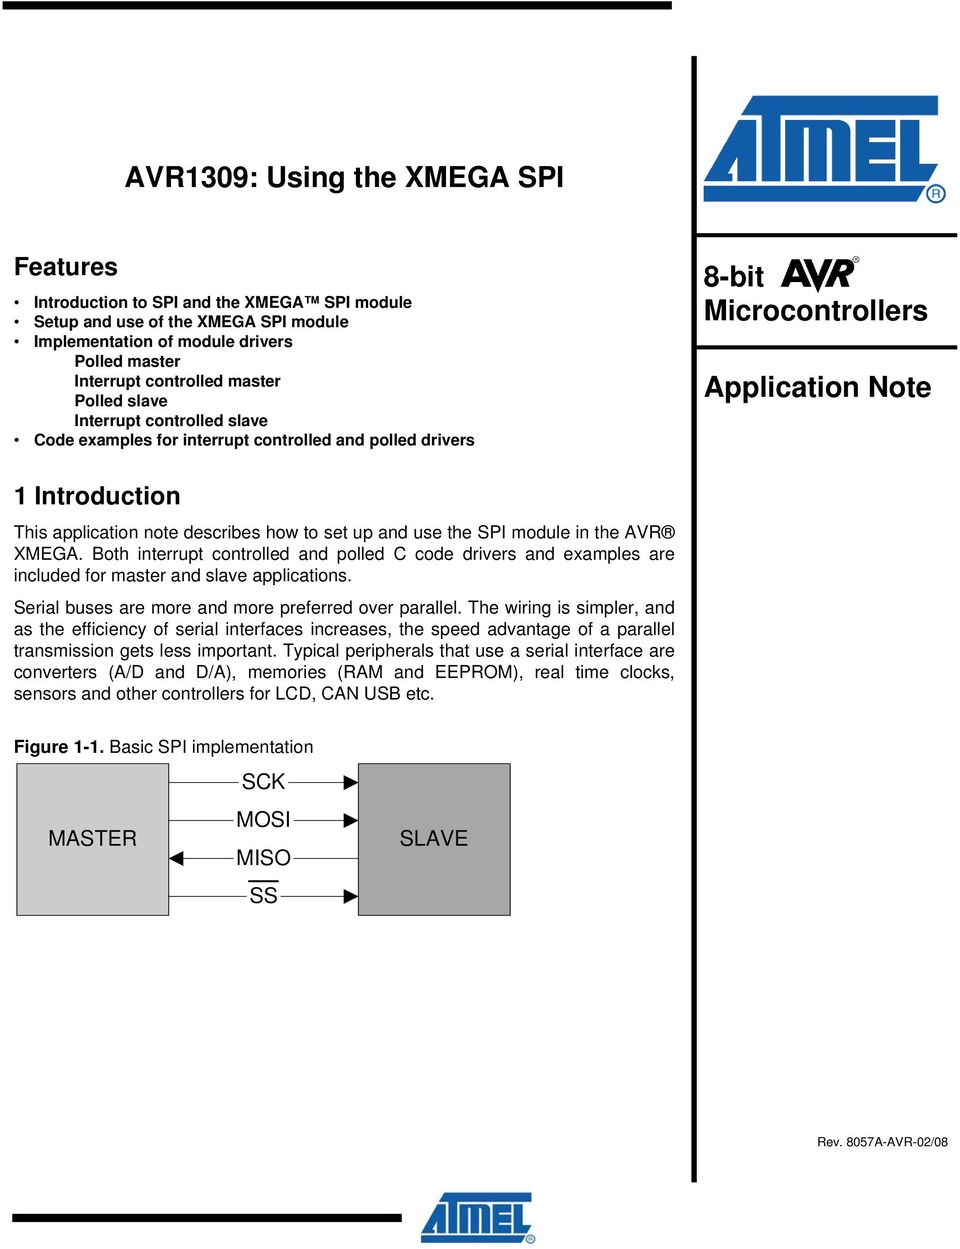 and use the SPI module in the AVR XMEGA. Both interrupt controlled and polled C code drivers and examples are included for master and slave applications.